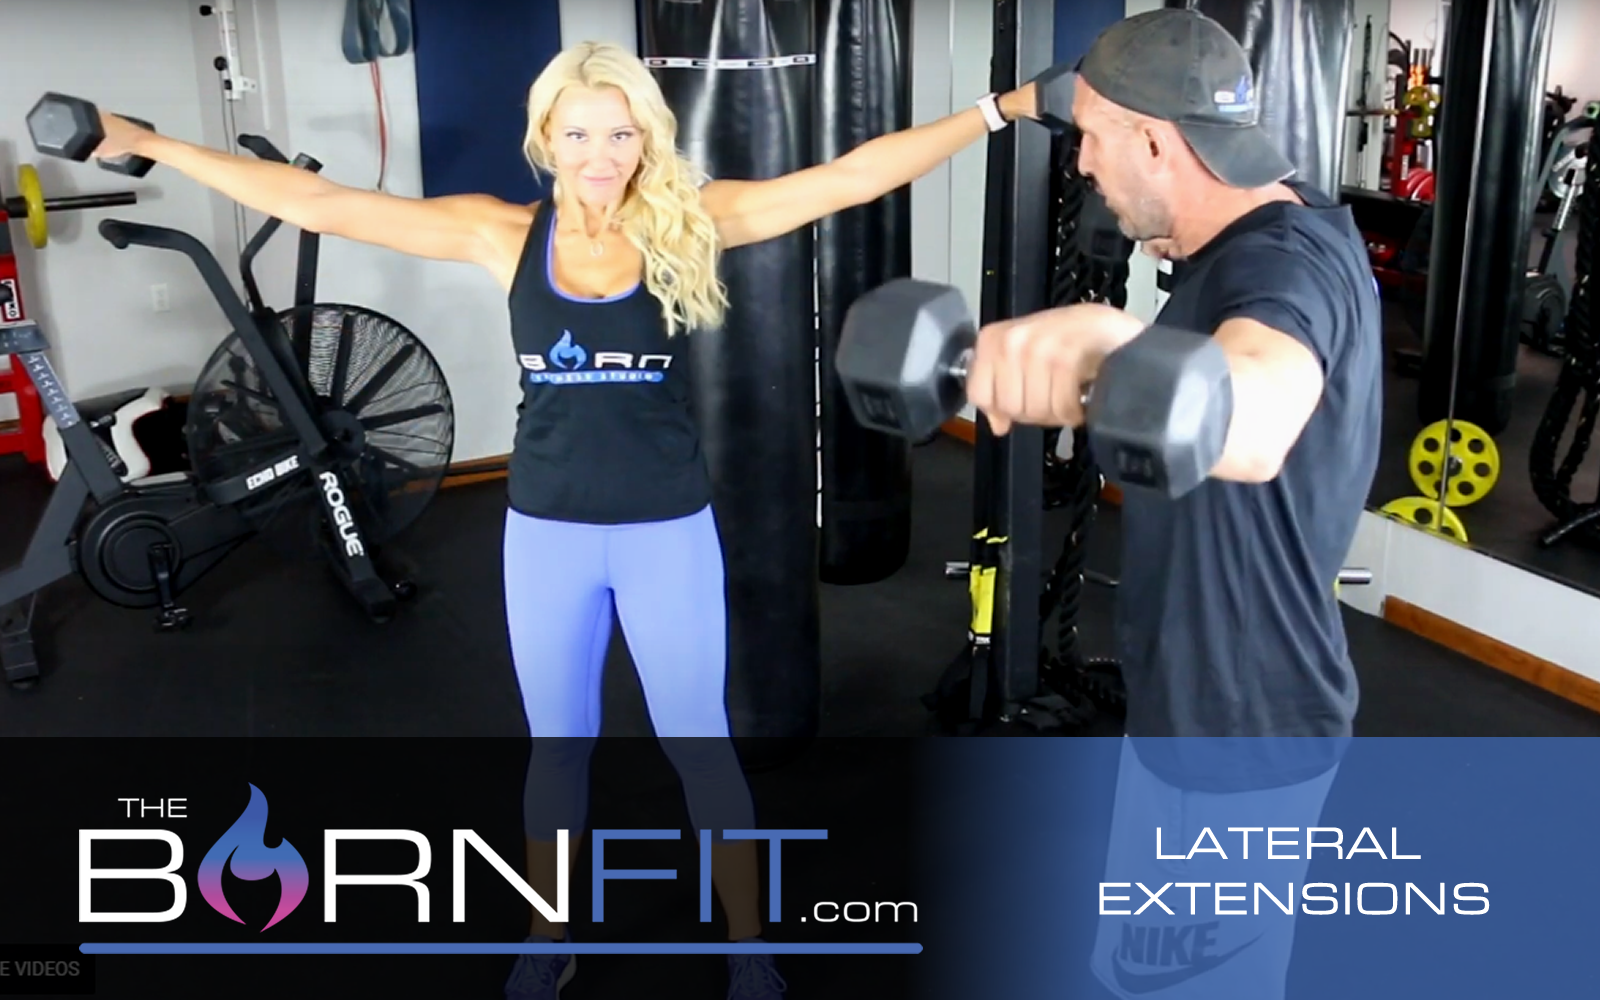 LAteral Extensions workouts